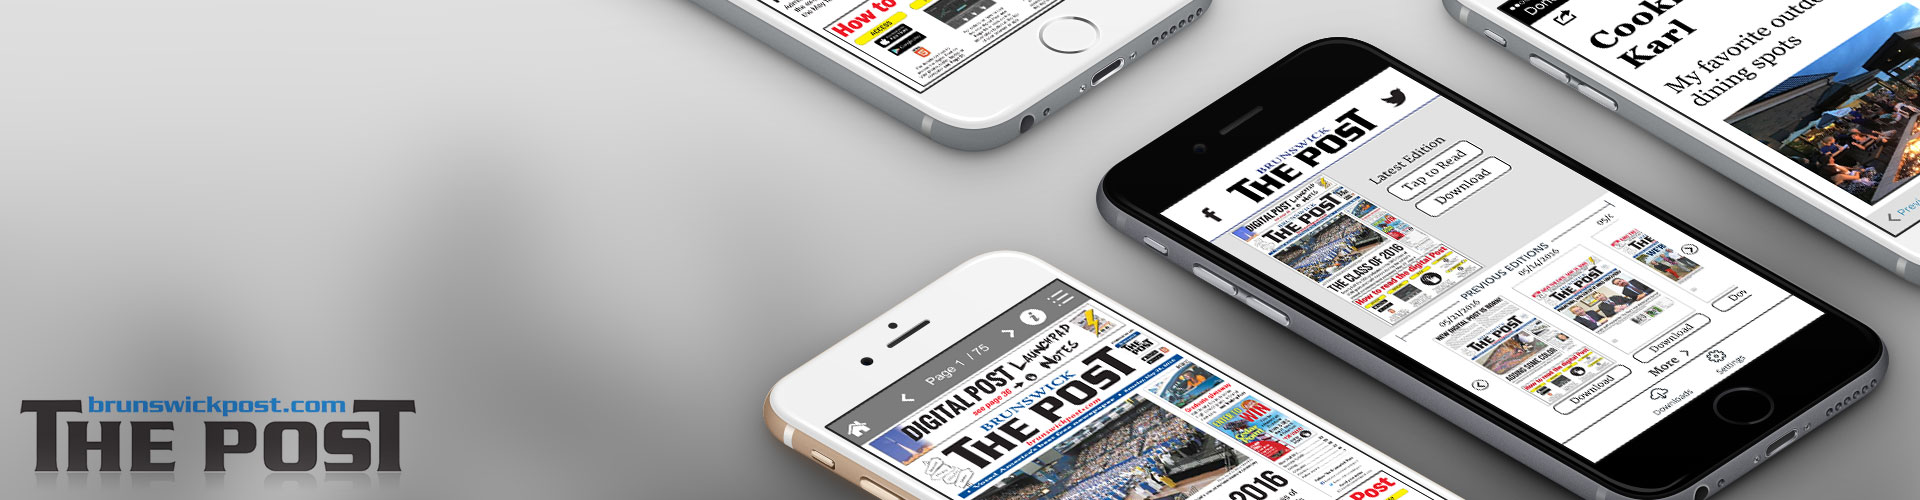 PageSuite Collaborate with The Post Newspapers on Revolutionary 'Mobile First' Strategy